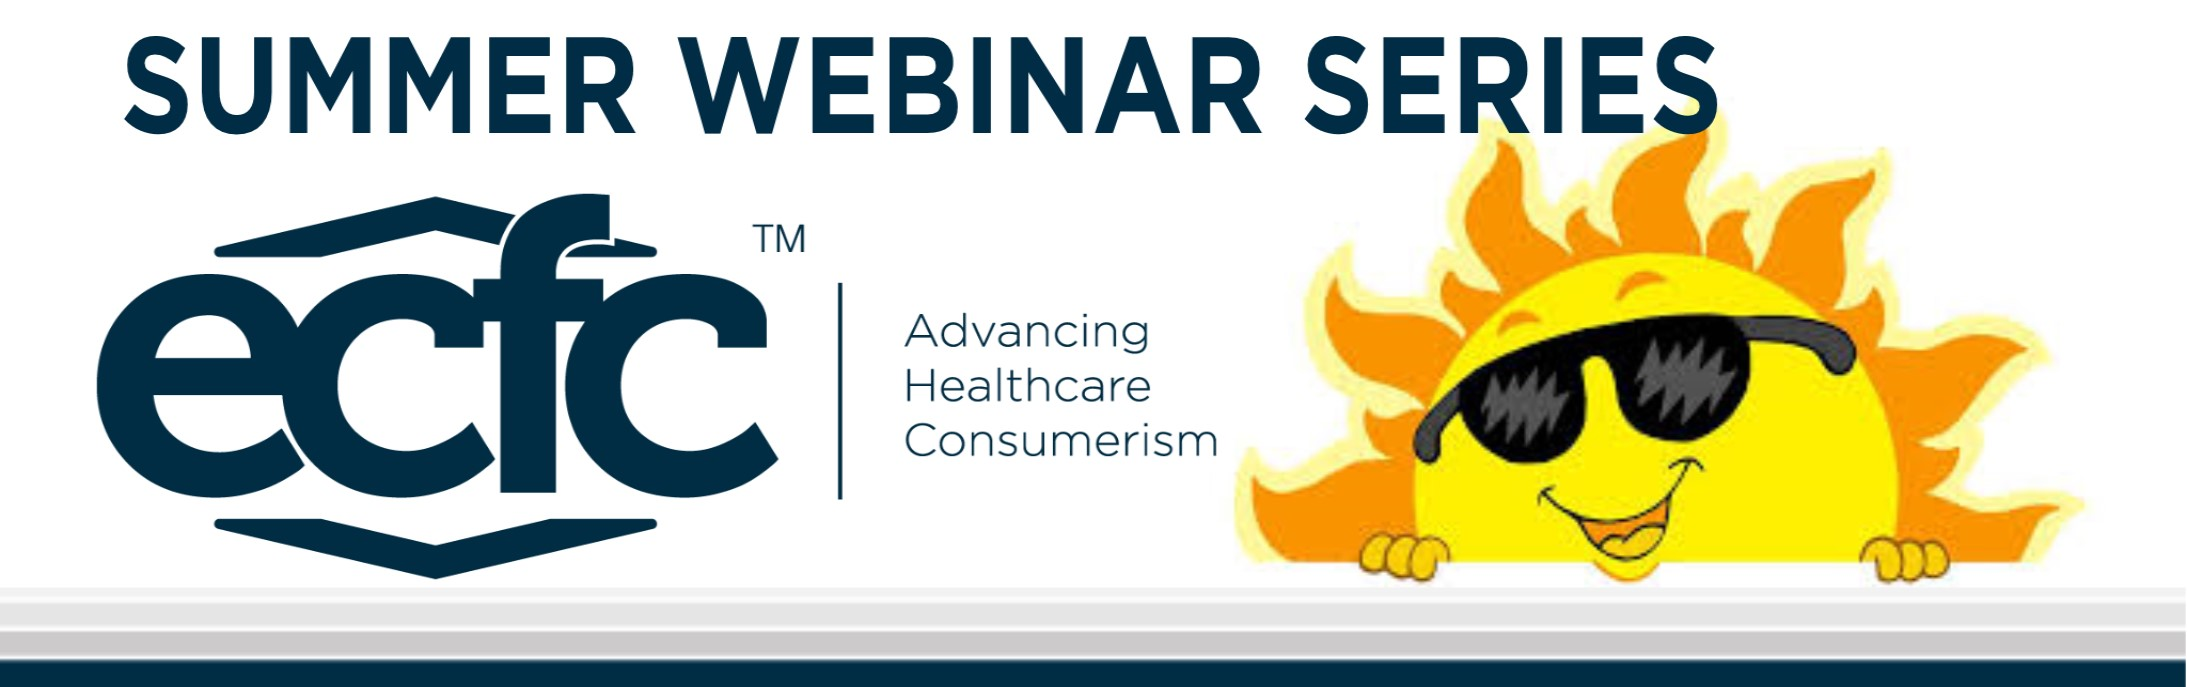 ECFC Summer Webinar Series Graphic